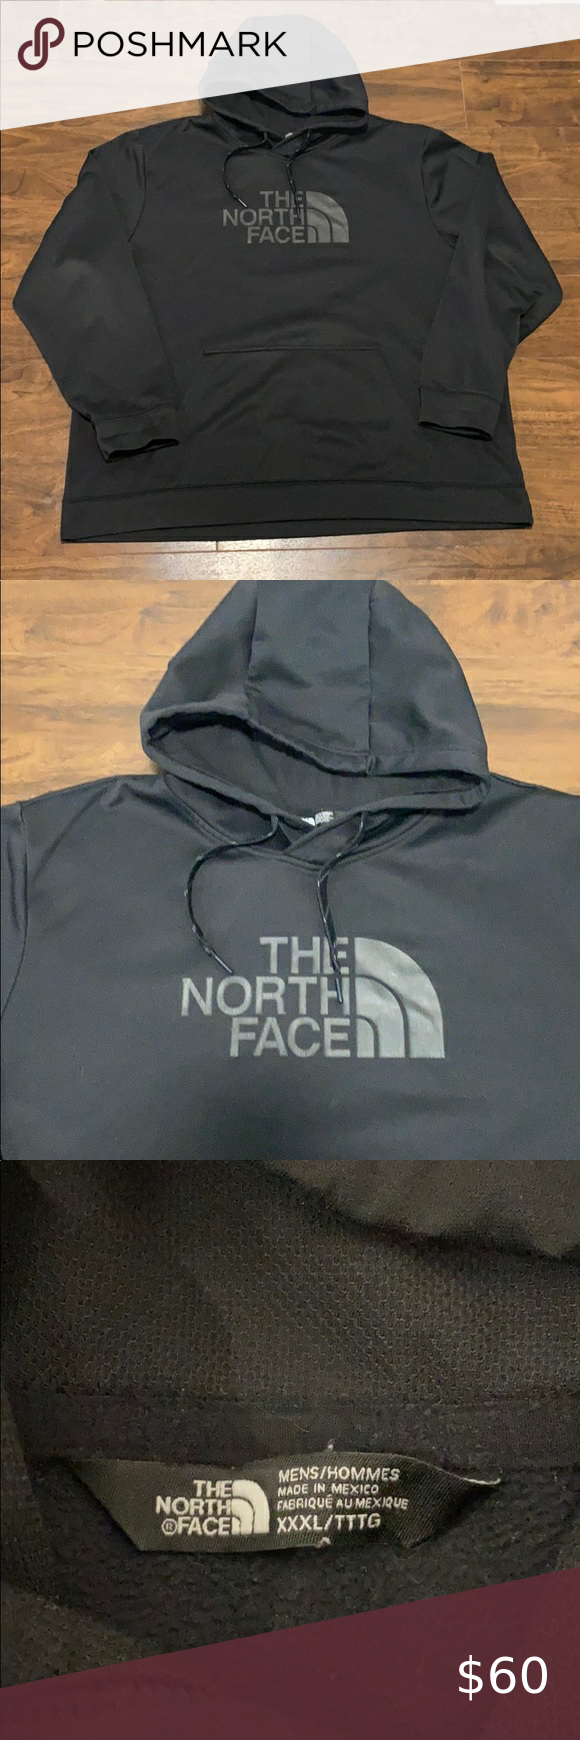 North Face Men S Hooded Pullover Sweater Size 3x North Face Mens North Face Shirts Pullover Sweaters [ 1740 x 580 Pixel ]